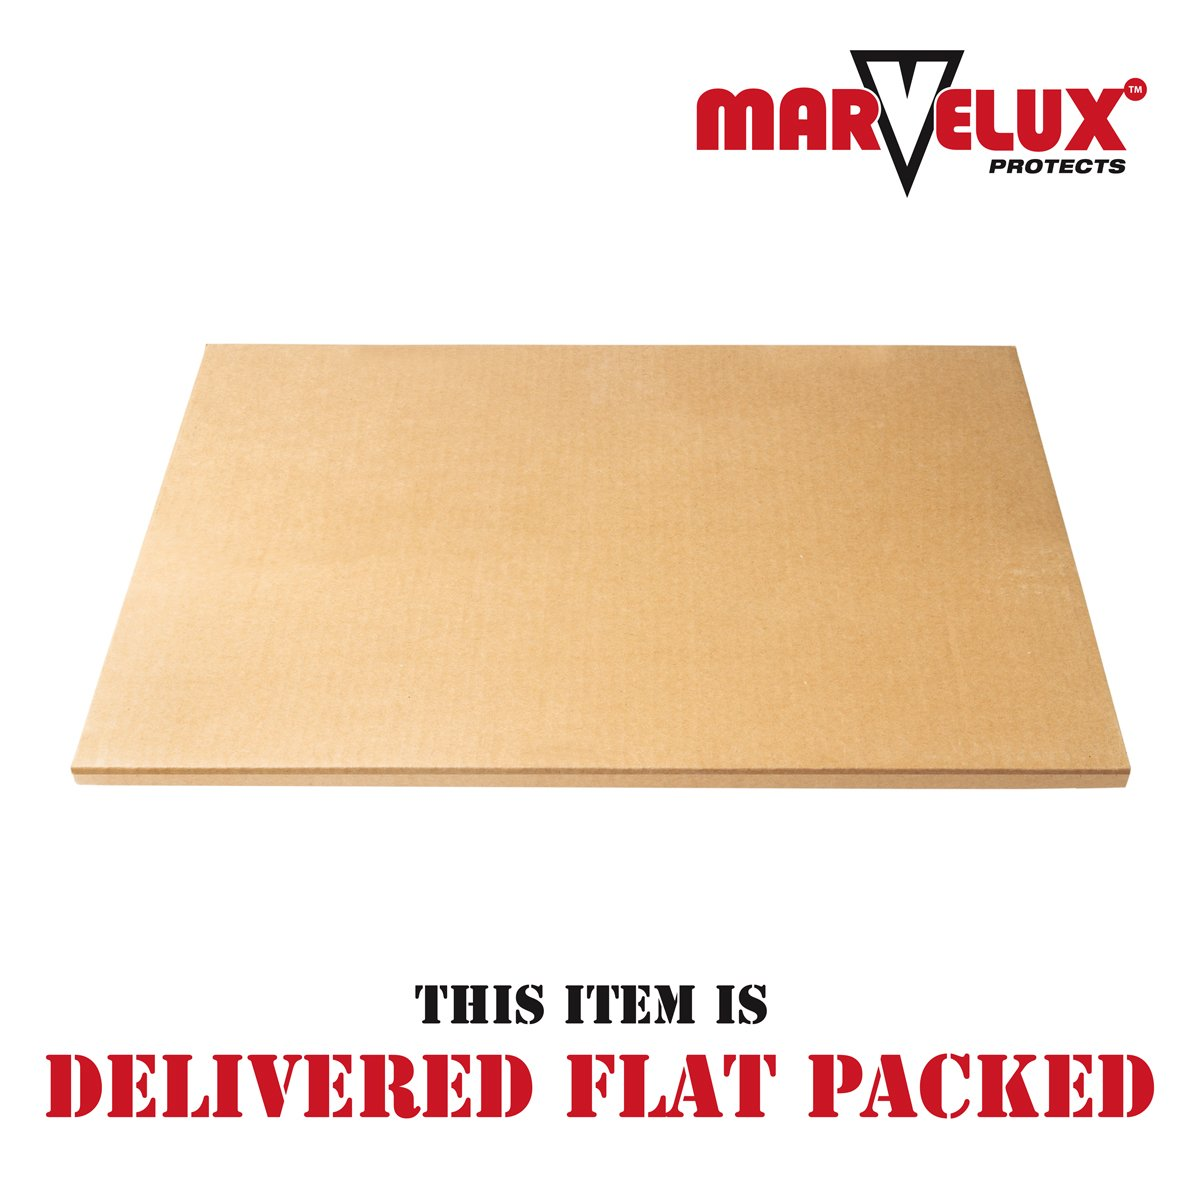 Marvelux 36'' x 48'' Heavy Duty Polycarbonate (PC) Lipped Chair Mat for Low, Standard and Medium Pile Carpets | Transparent Carpet Protector | Pack of 2 by Marvelux (Image #9)